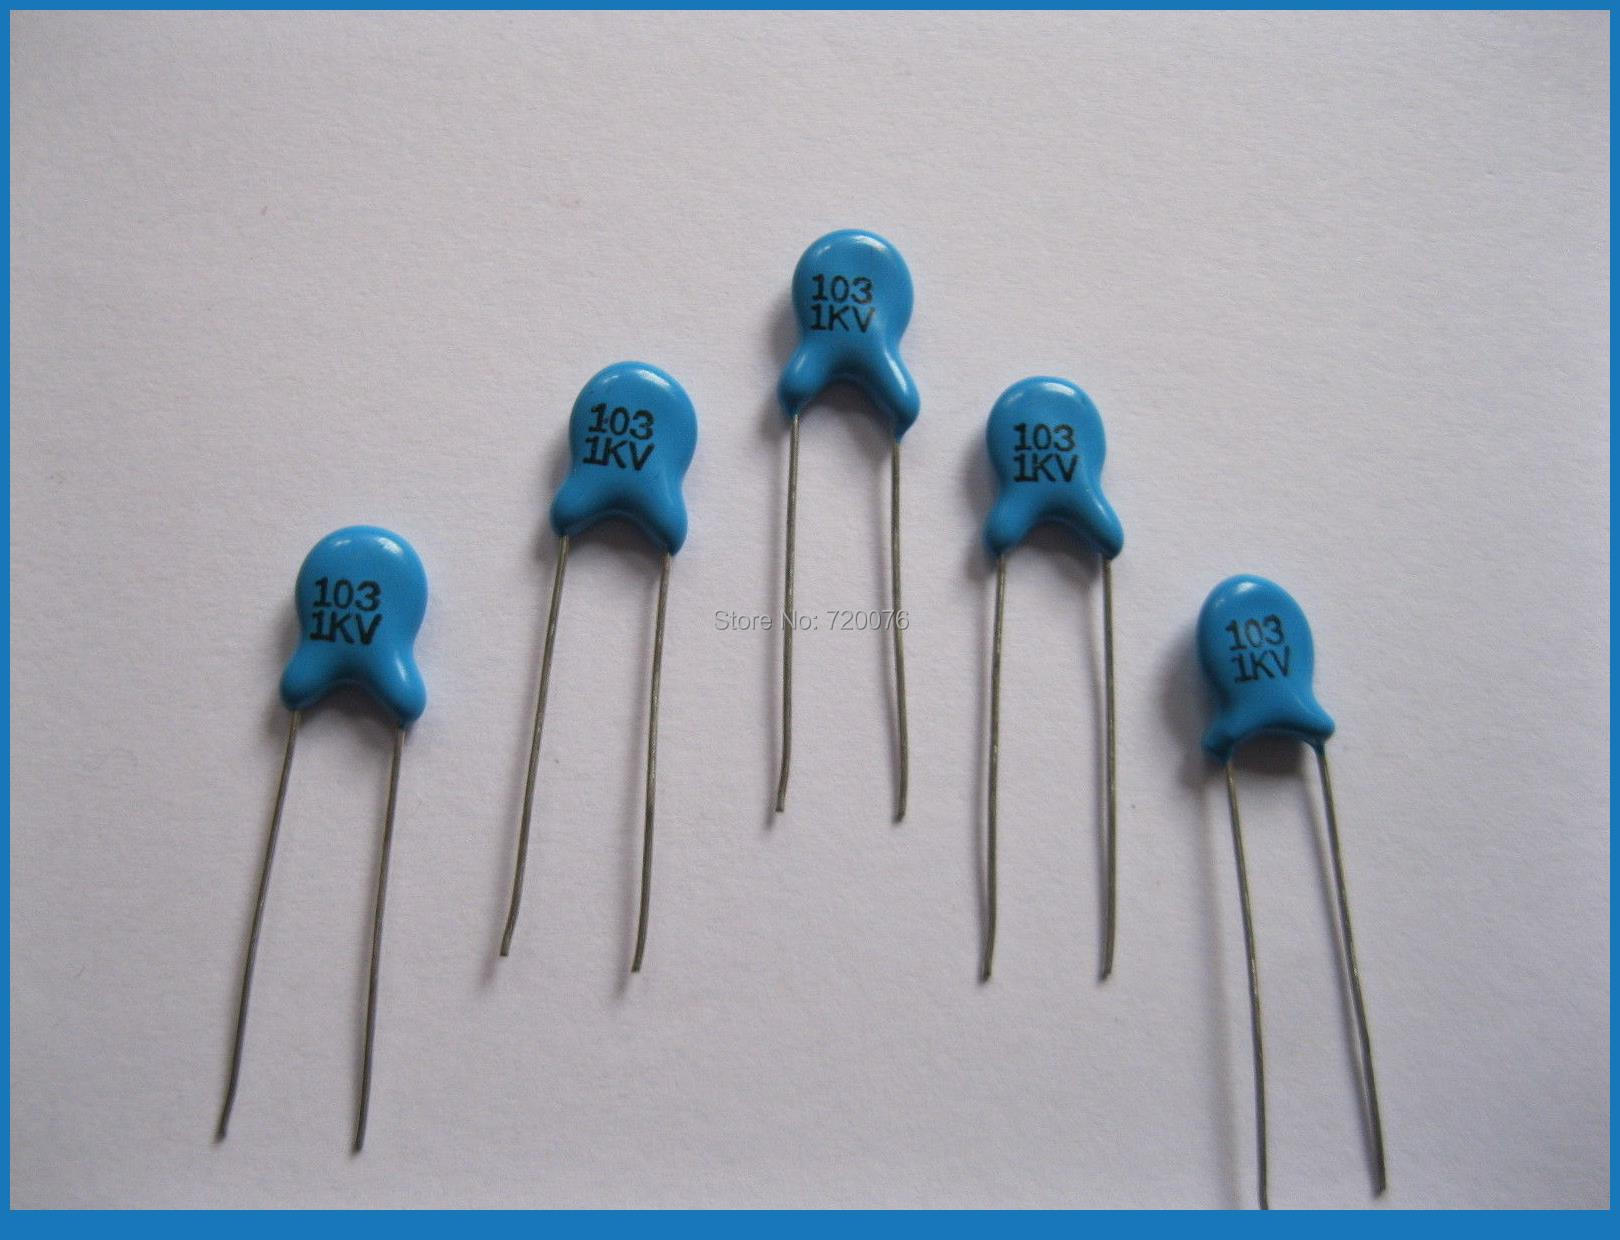 1000 pcs Ceramic Disc Capacitors 1000V 1KV 103pF 0.01uF цена